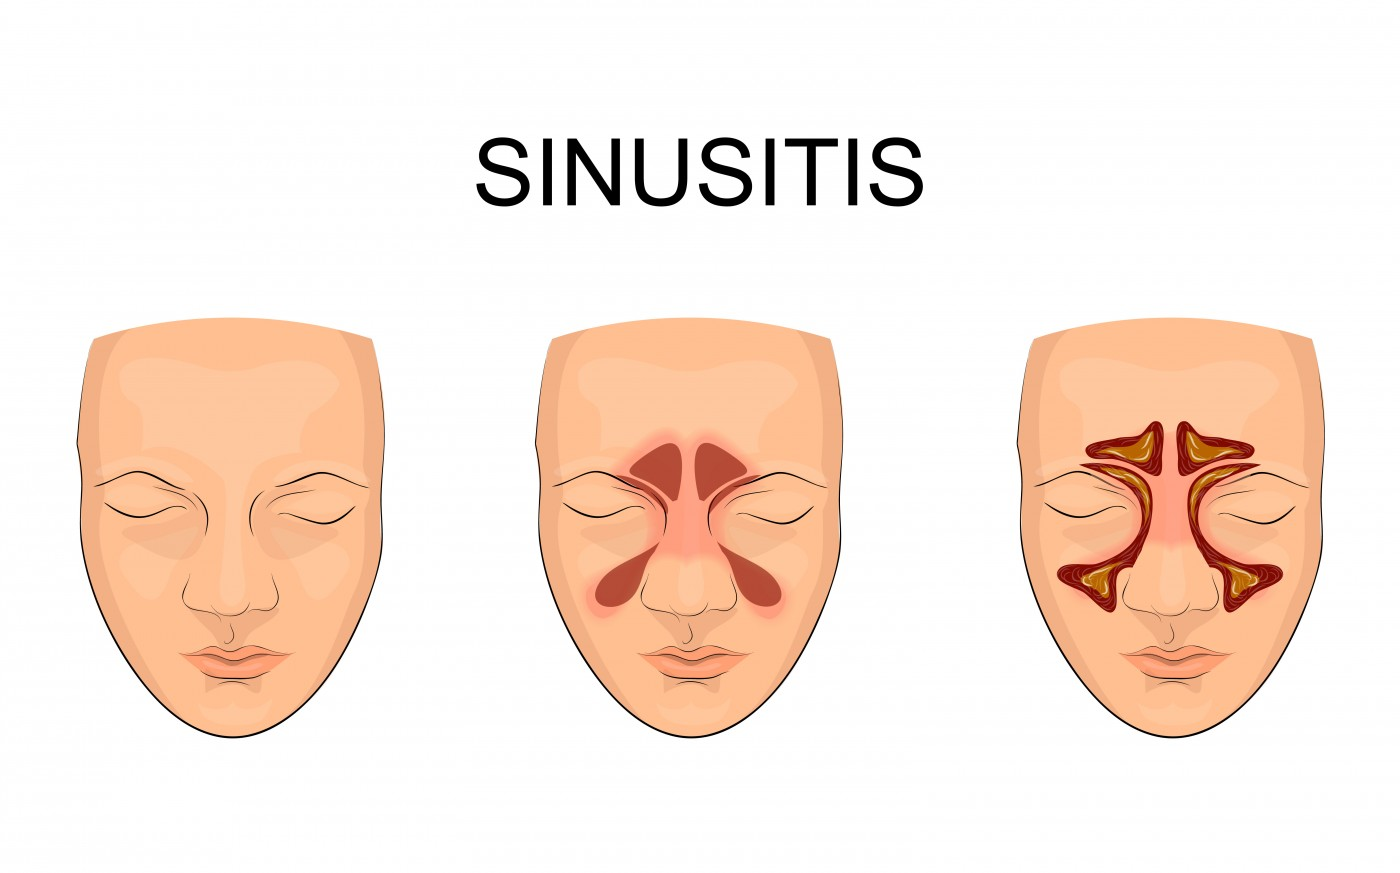 Chronic inflammation of the sinus cavities is linked to bronchiectasis in COPD.